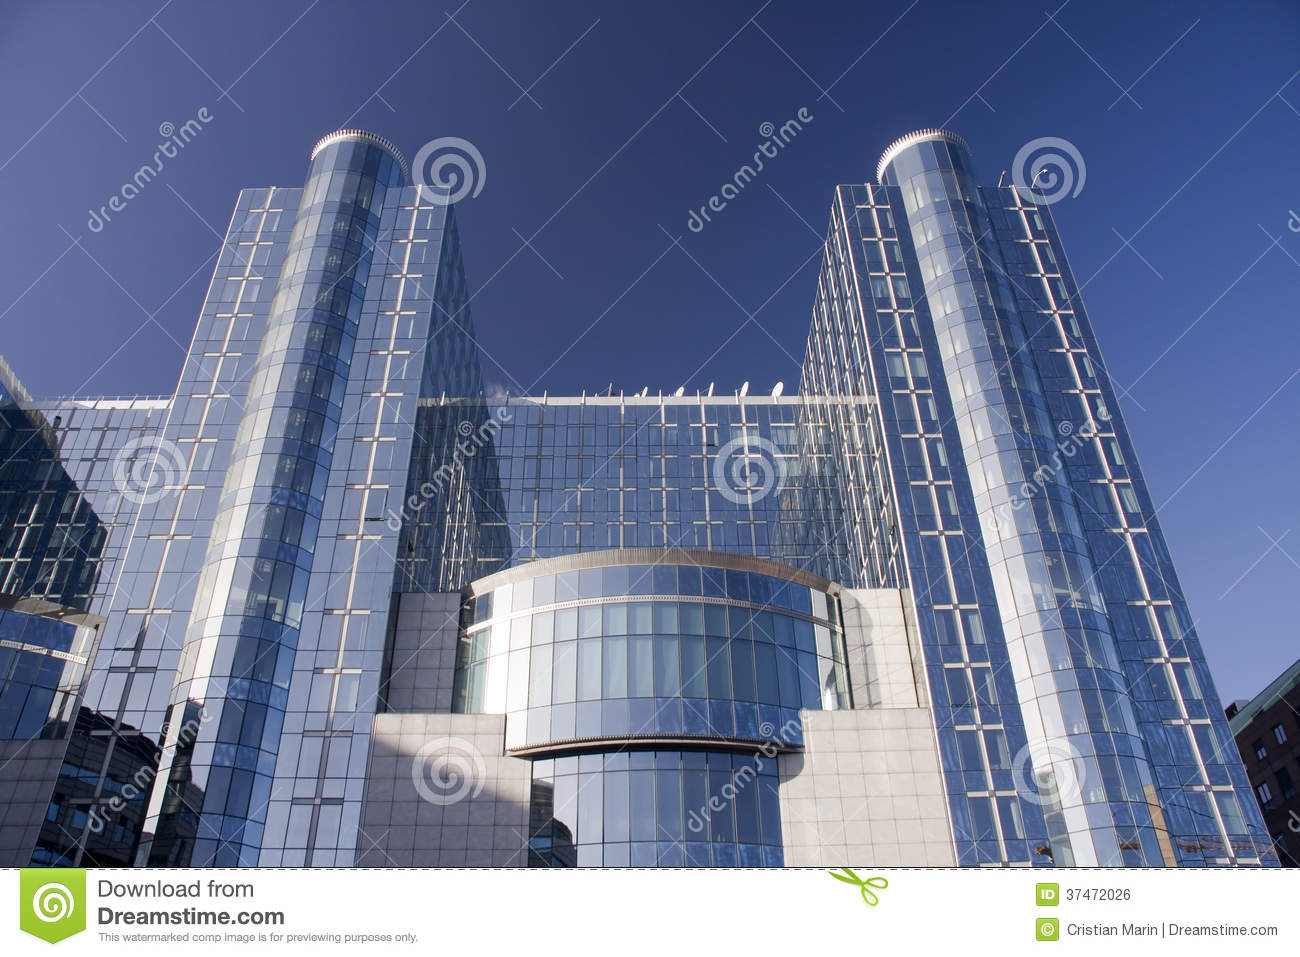 European Parliament Building In Brussels Royalty Free Stock Image ...